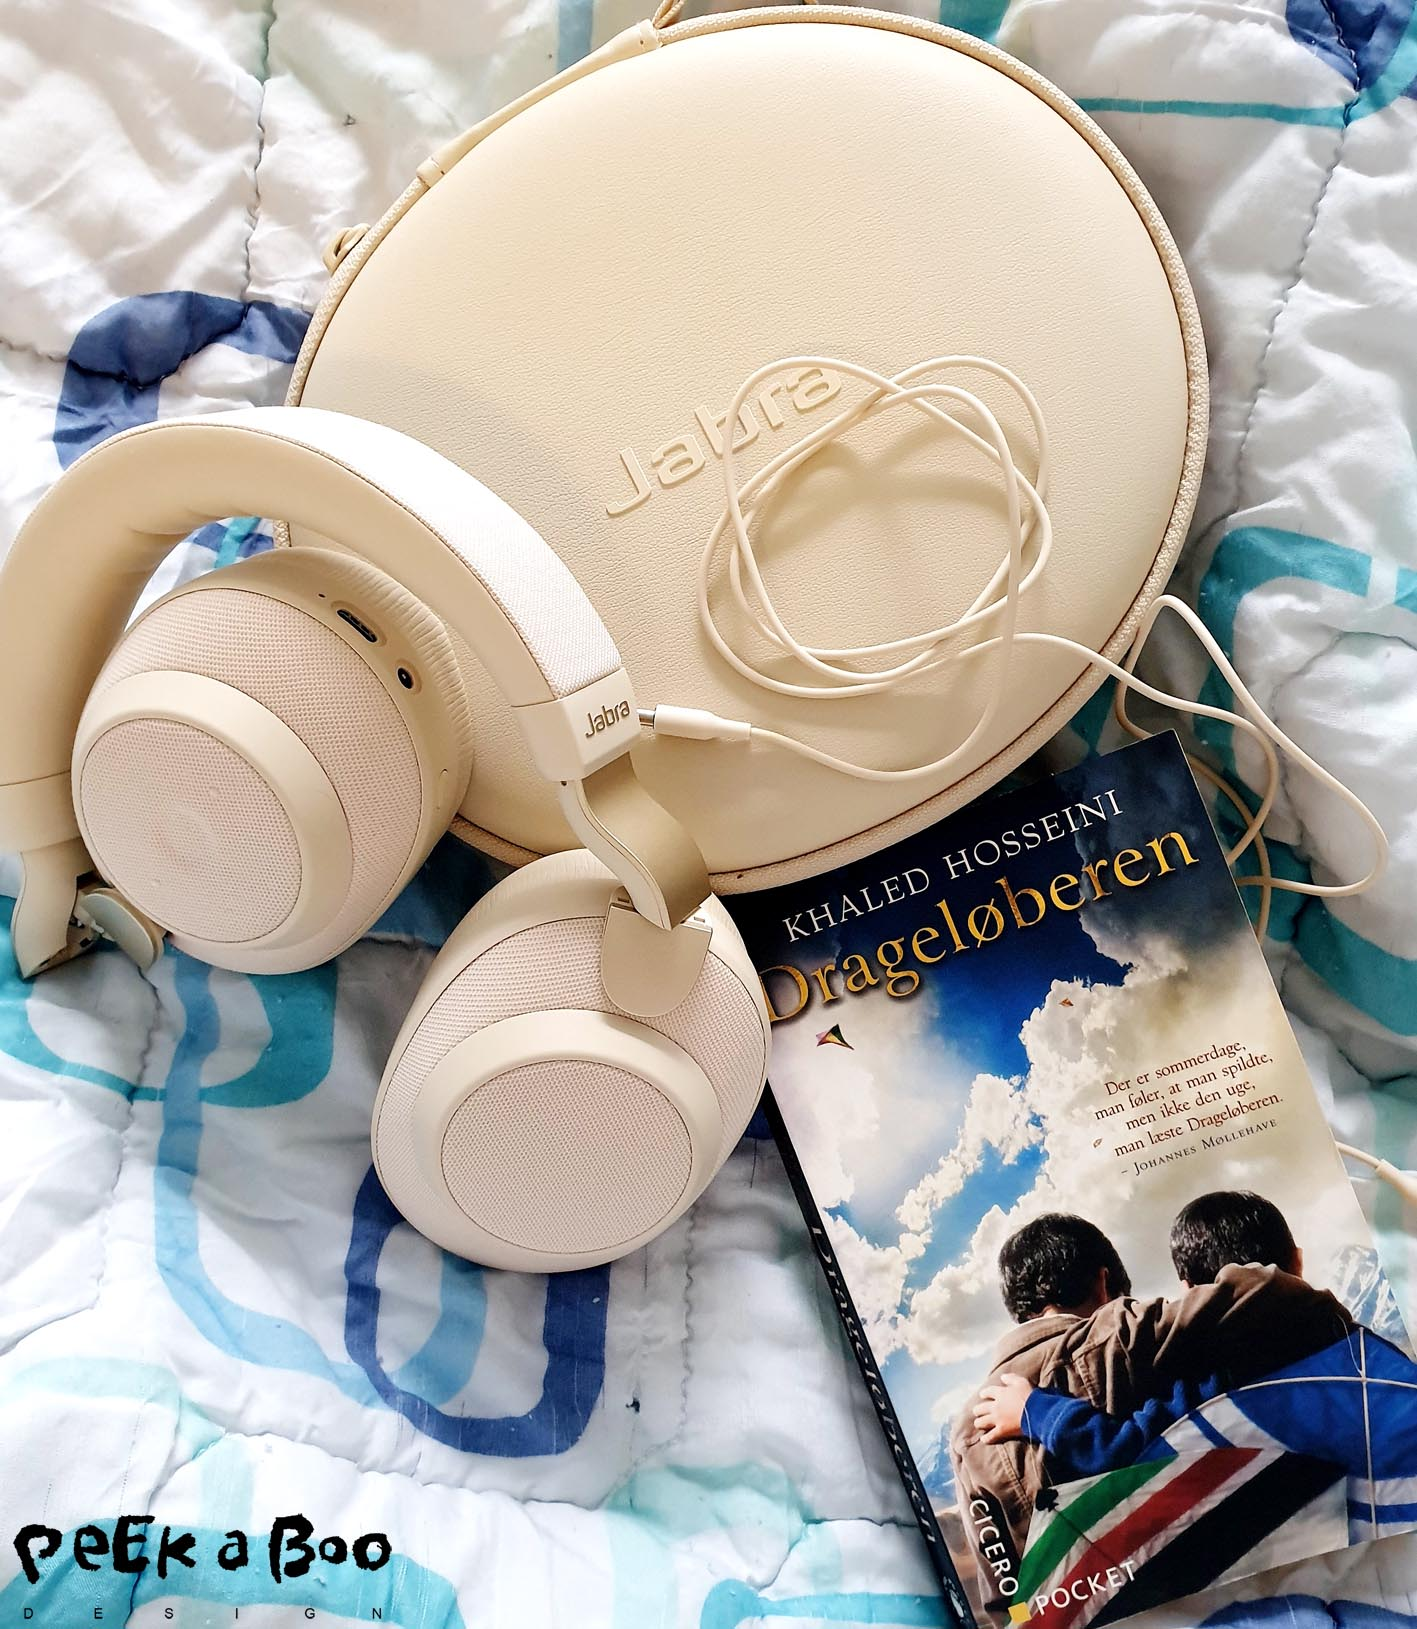 This headset from Jabra can save your day a the hospital, and remember a good book aswell.